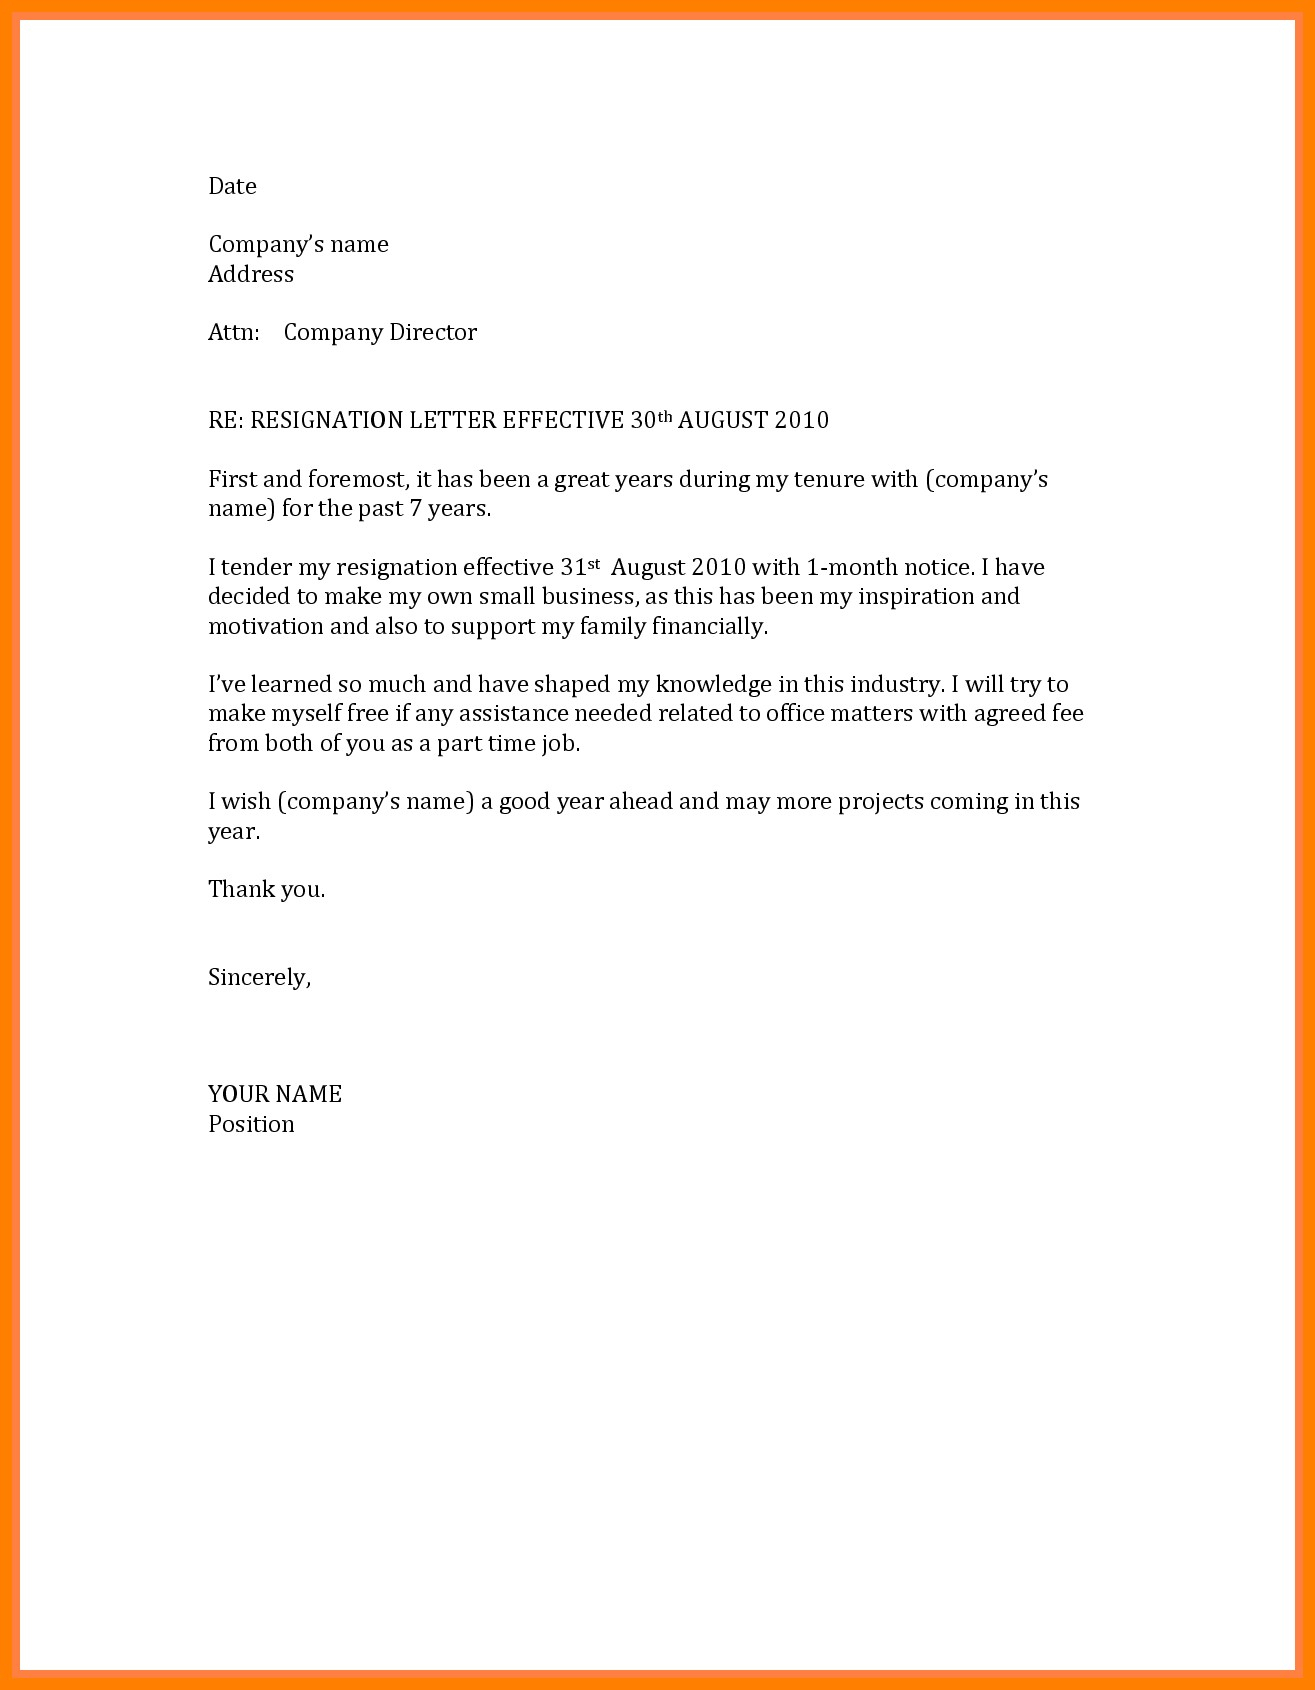 Professional Resignation Letter Template - Resignation Letter New Job Opportunity Fresh Sample Job Resignation